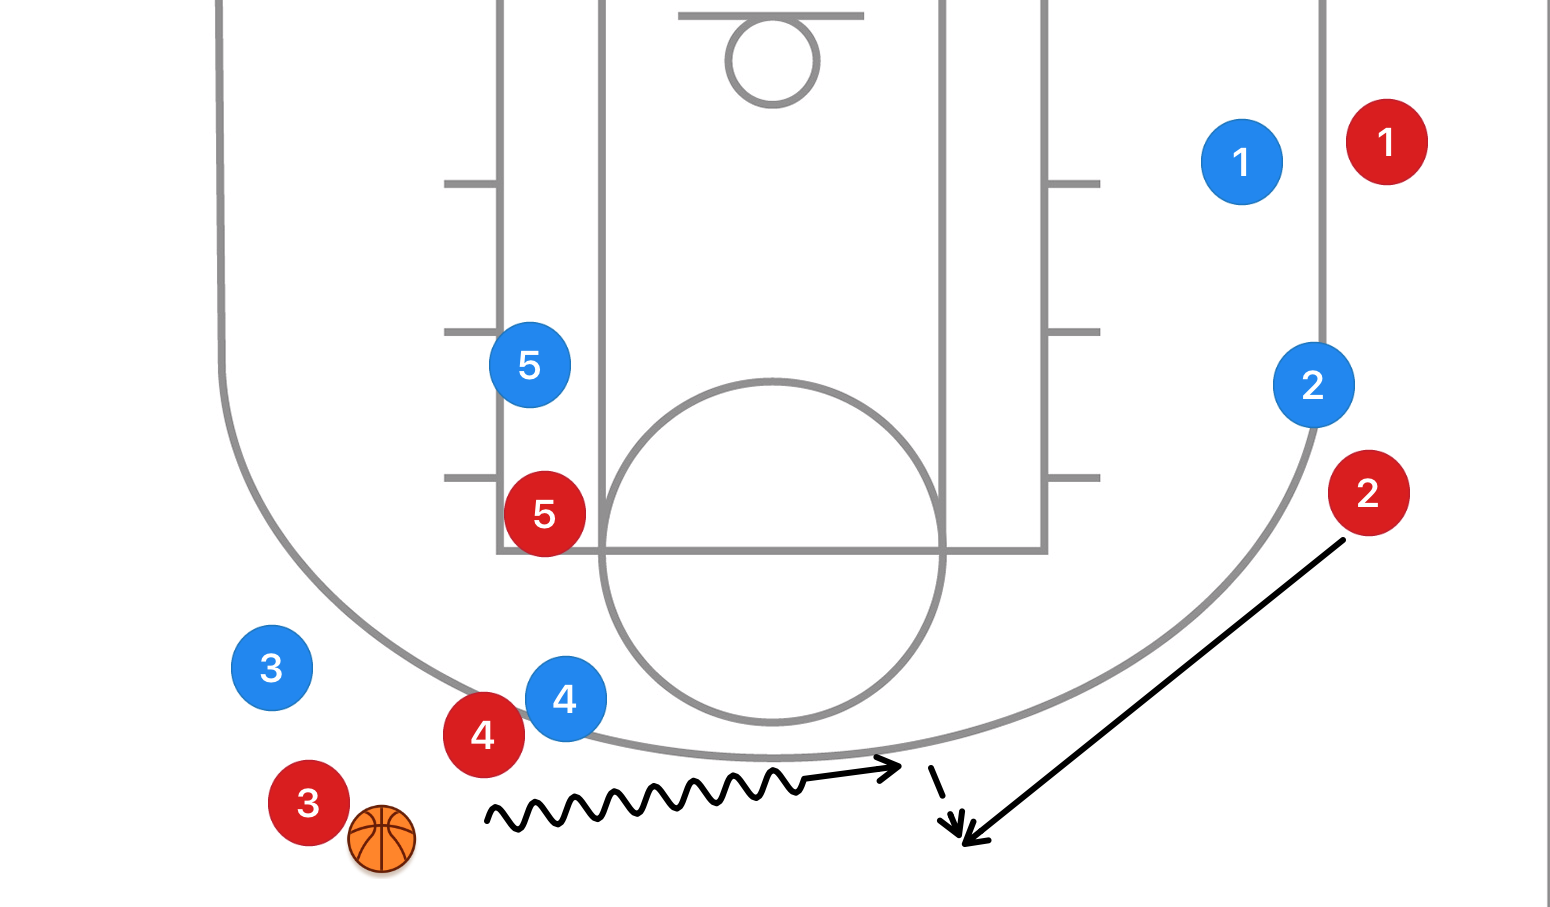 4 out 1 in motion offense drills pdf